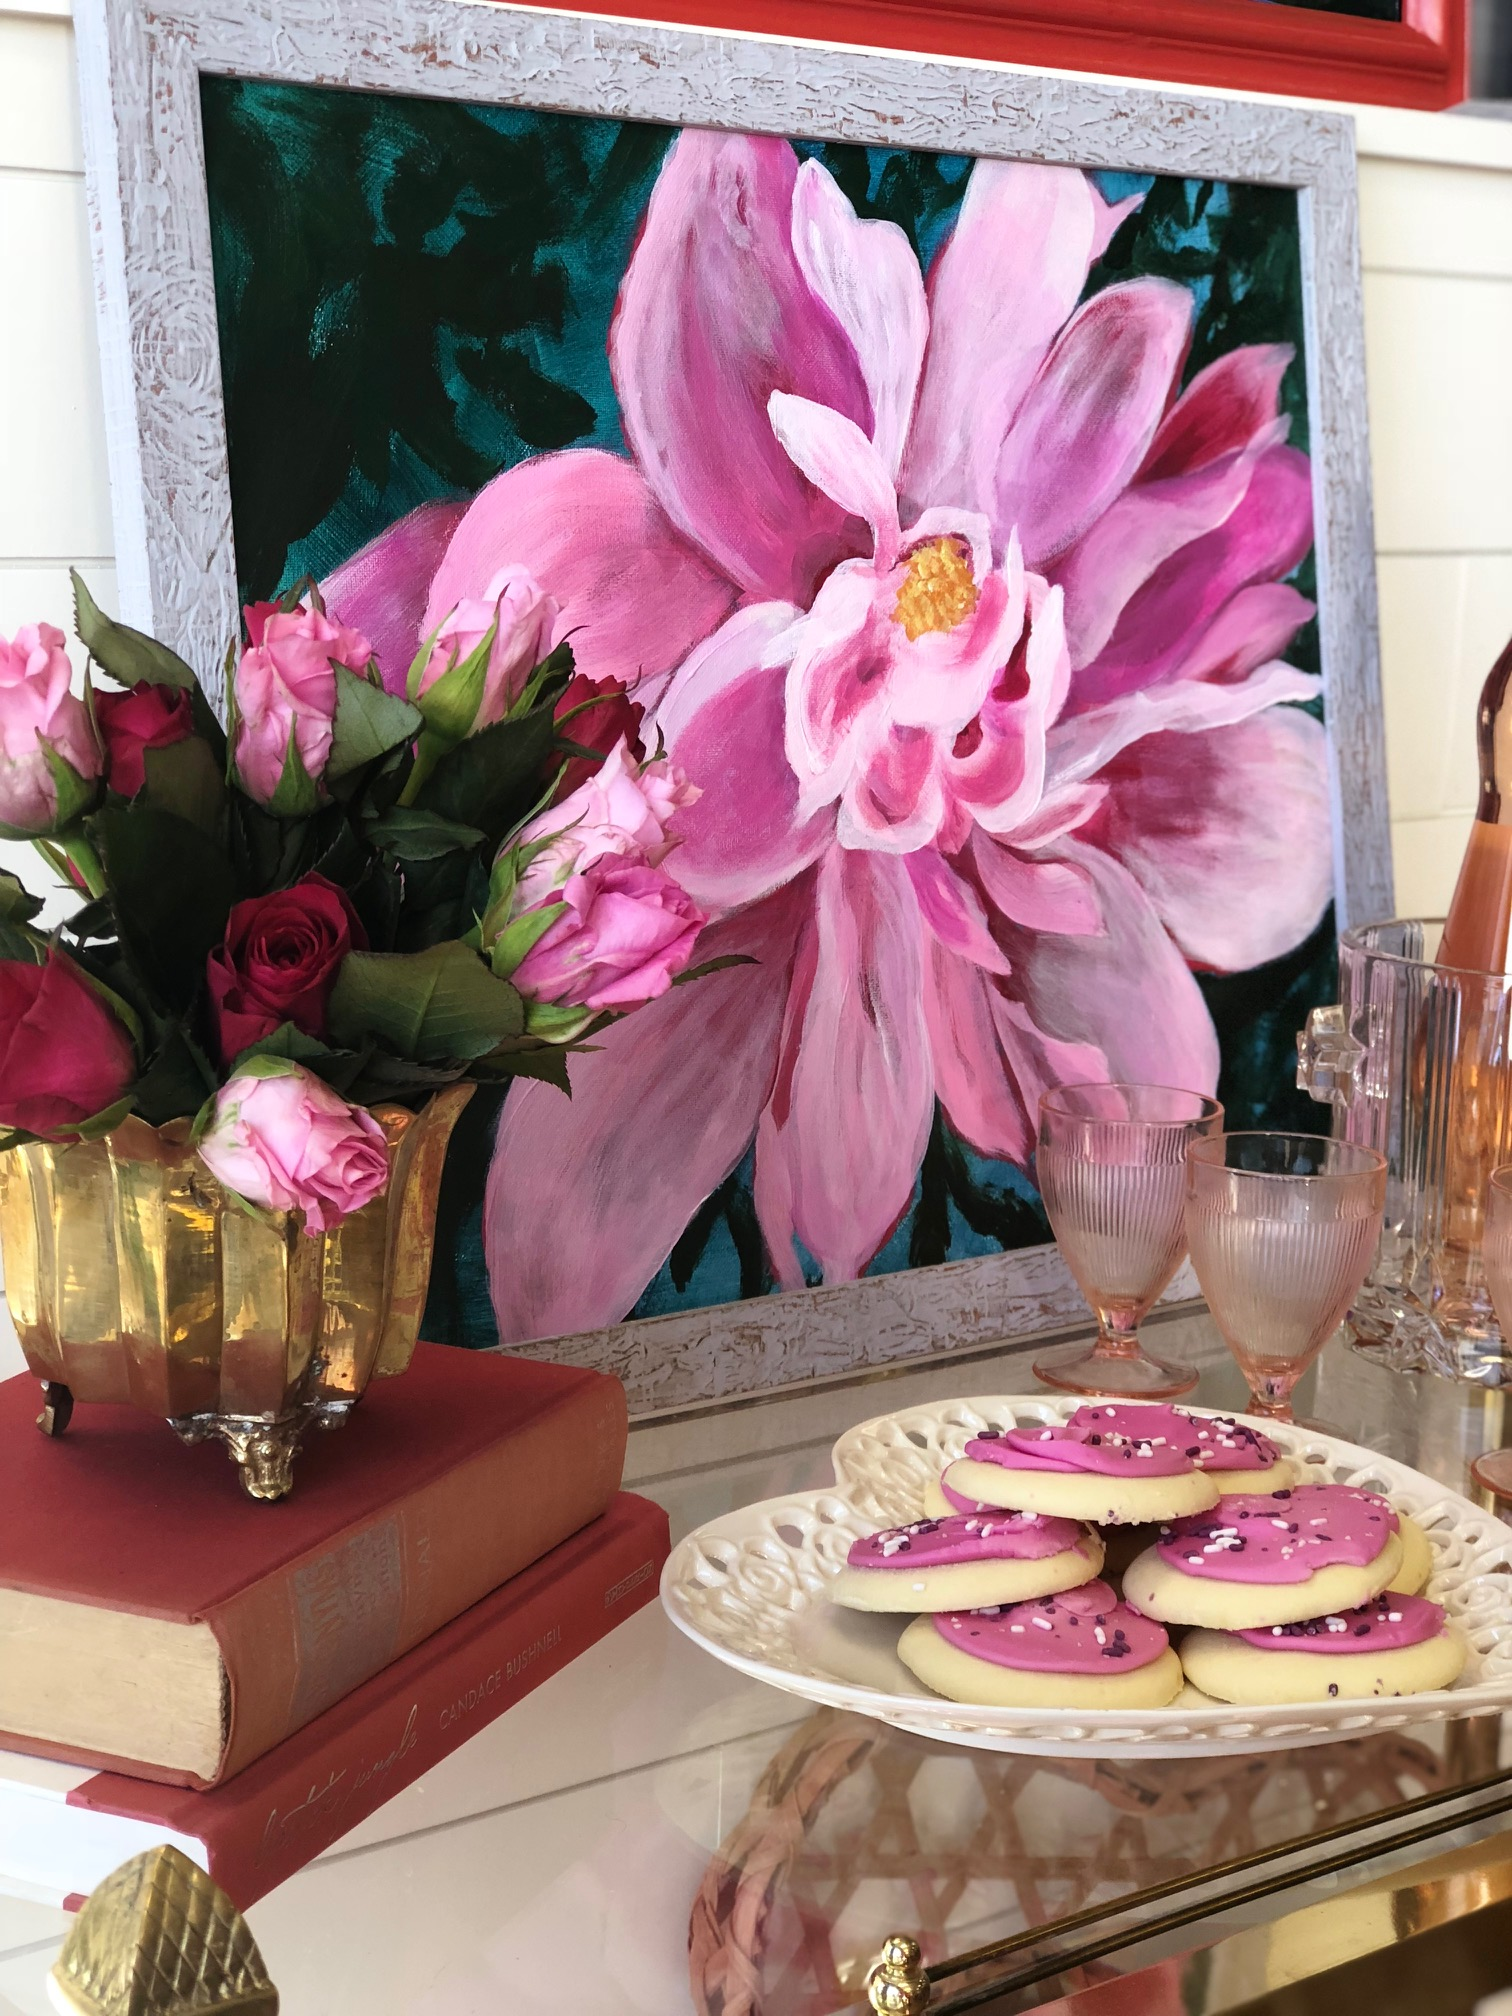 If roses aren't your style, the shades of pink in this original magnolia artwork continue the theme of vivid bright shades.